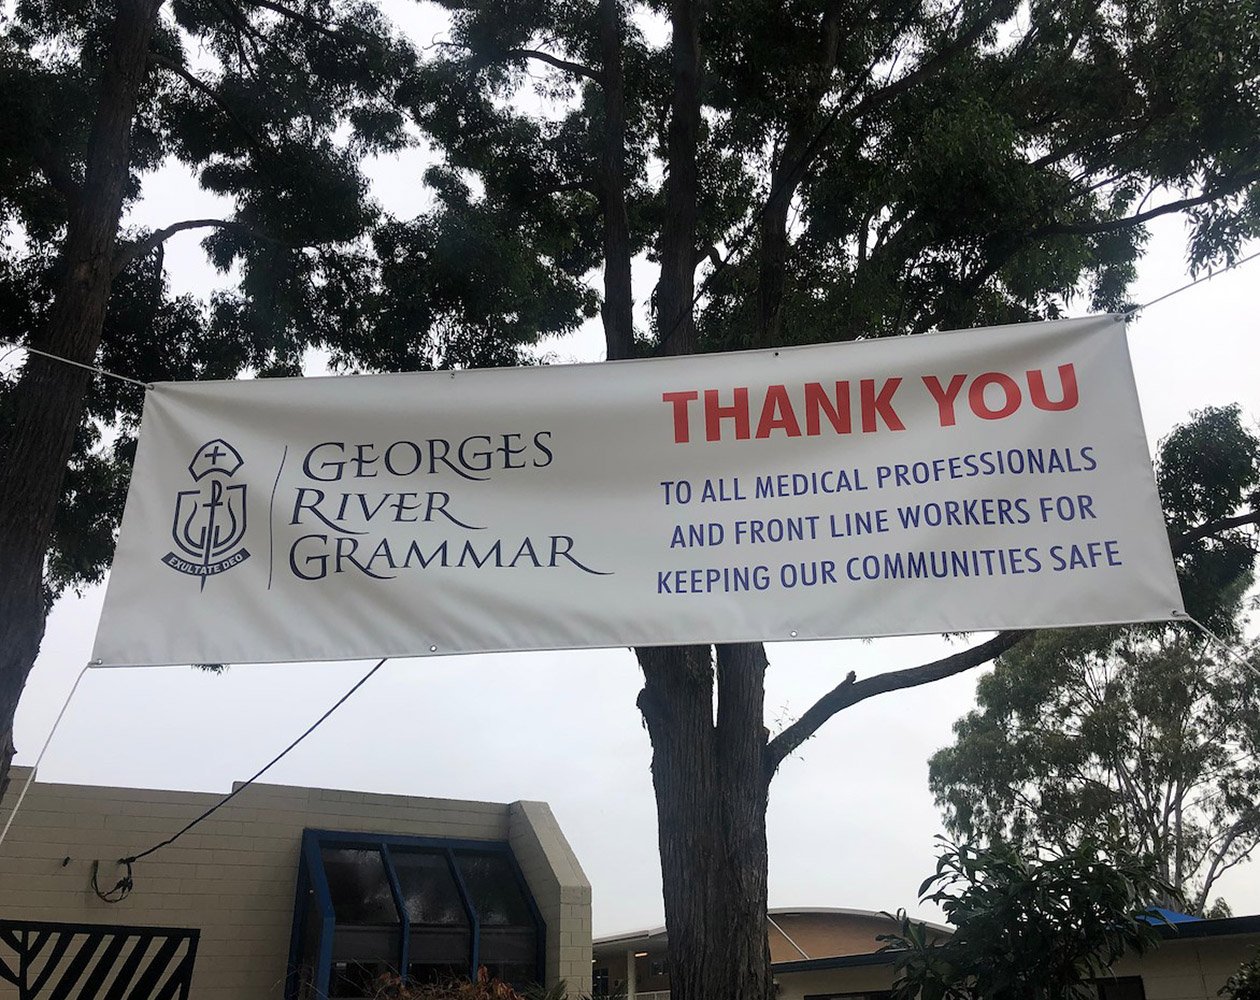 Georges River Grammar thank you sign